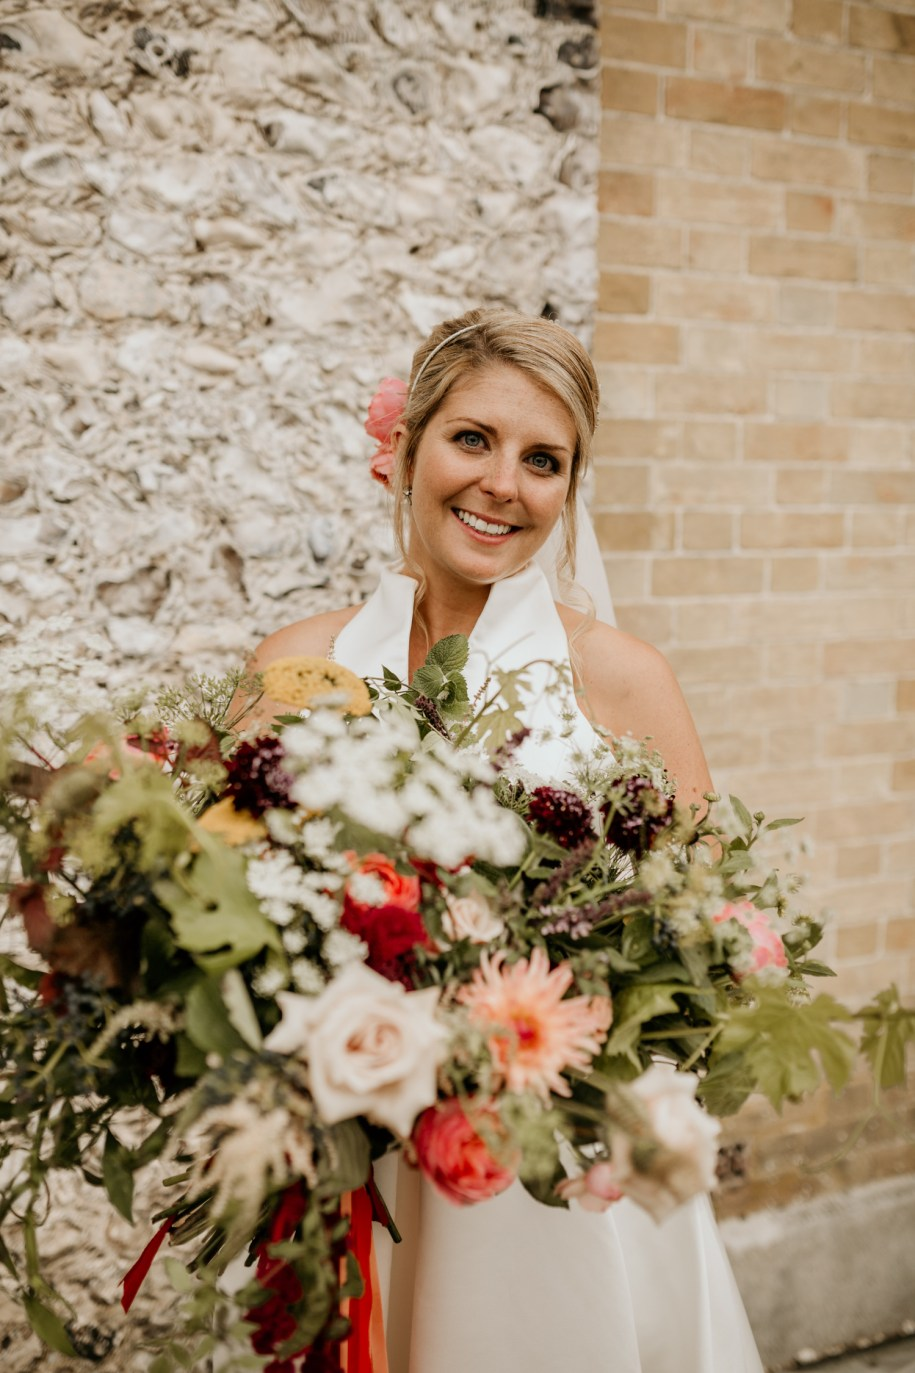 classical yet full of life bride holding her giant bohemian wedding bouquet